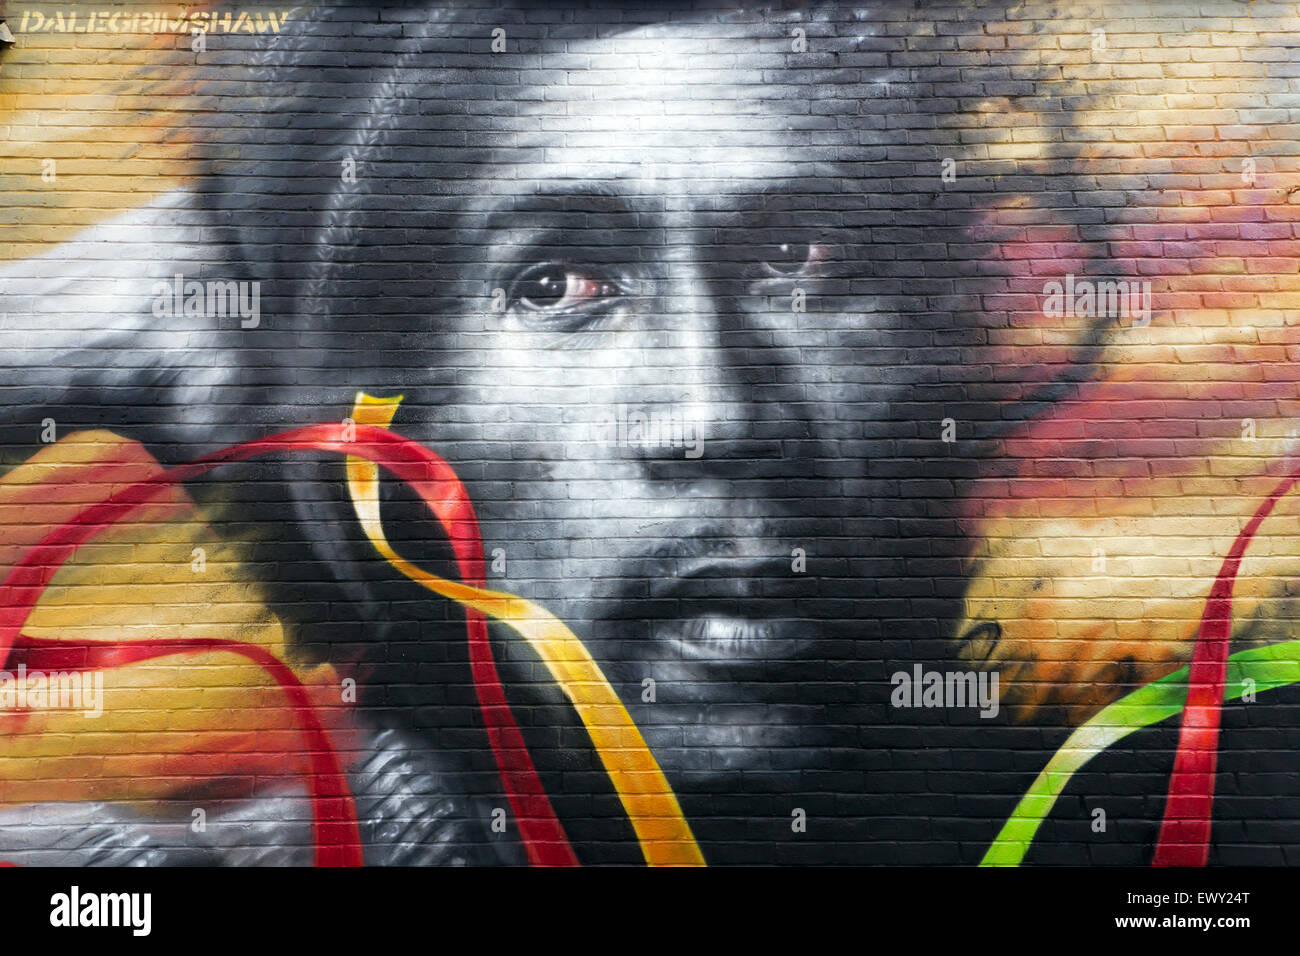 Close-up of part of a mural depicting Bob Marley, by Dale Grimshaw, on the back wall of the Brockley Barge, Stock Photo